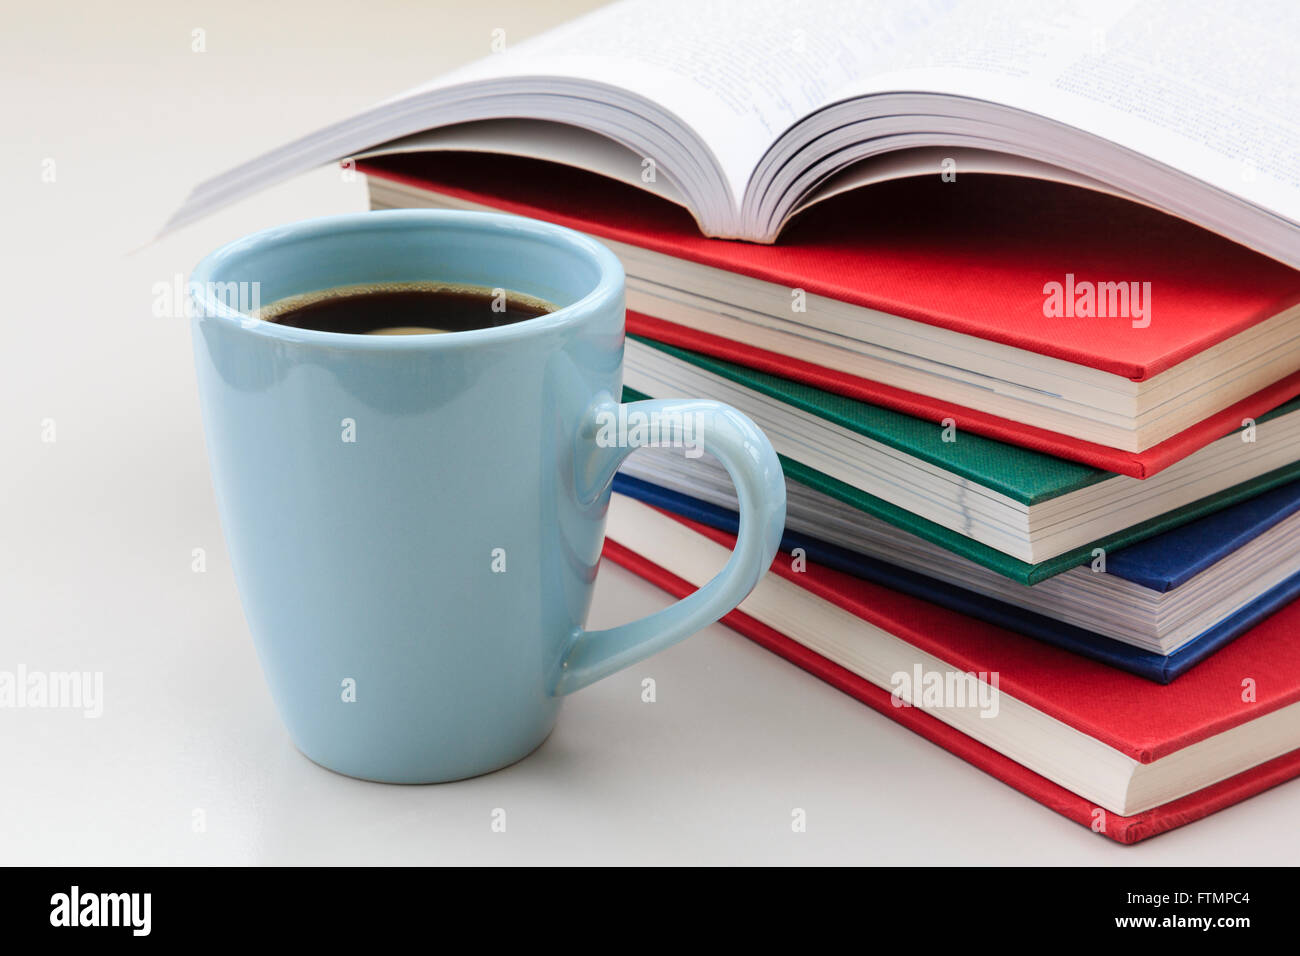 Student's study scene with pile of books on a desk with a mug of strong black coffee to help stay awake for - Stock Image